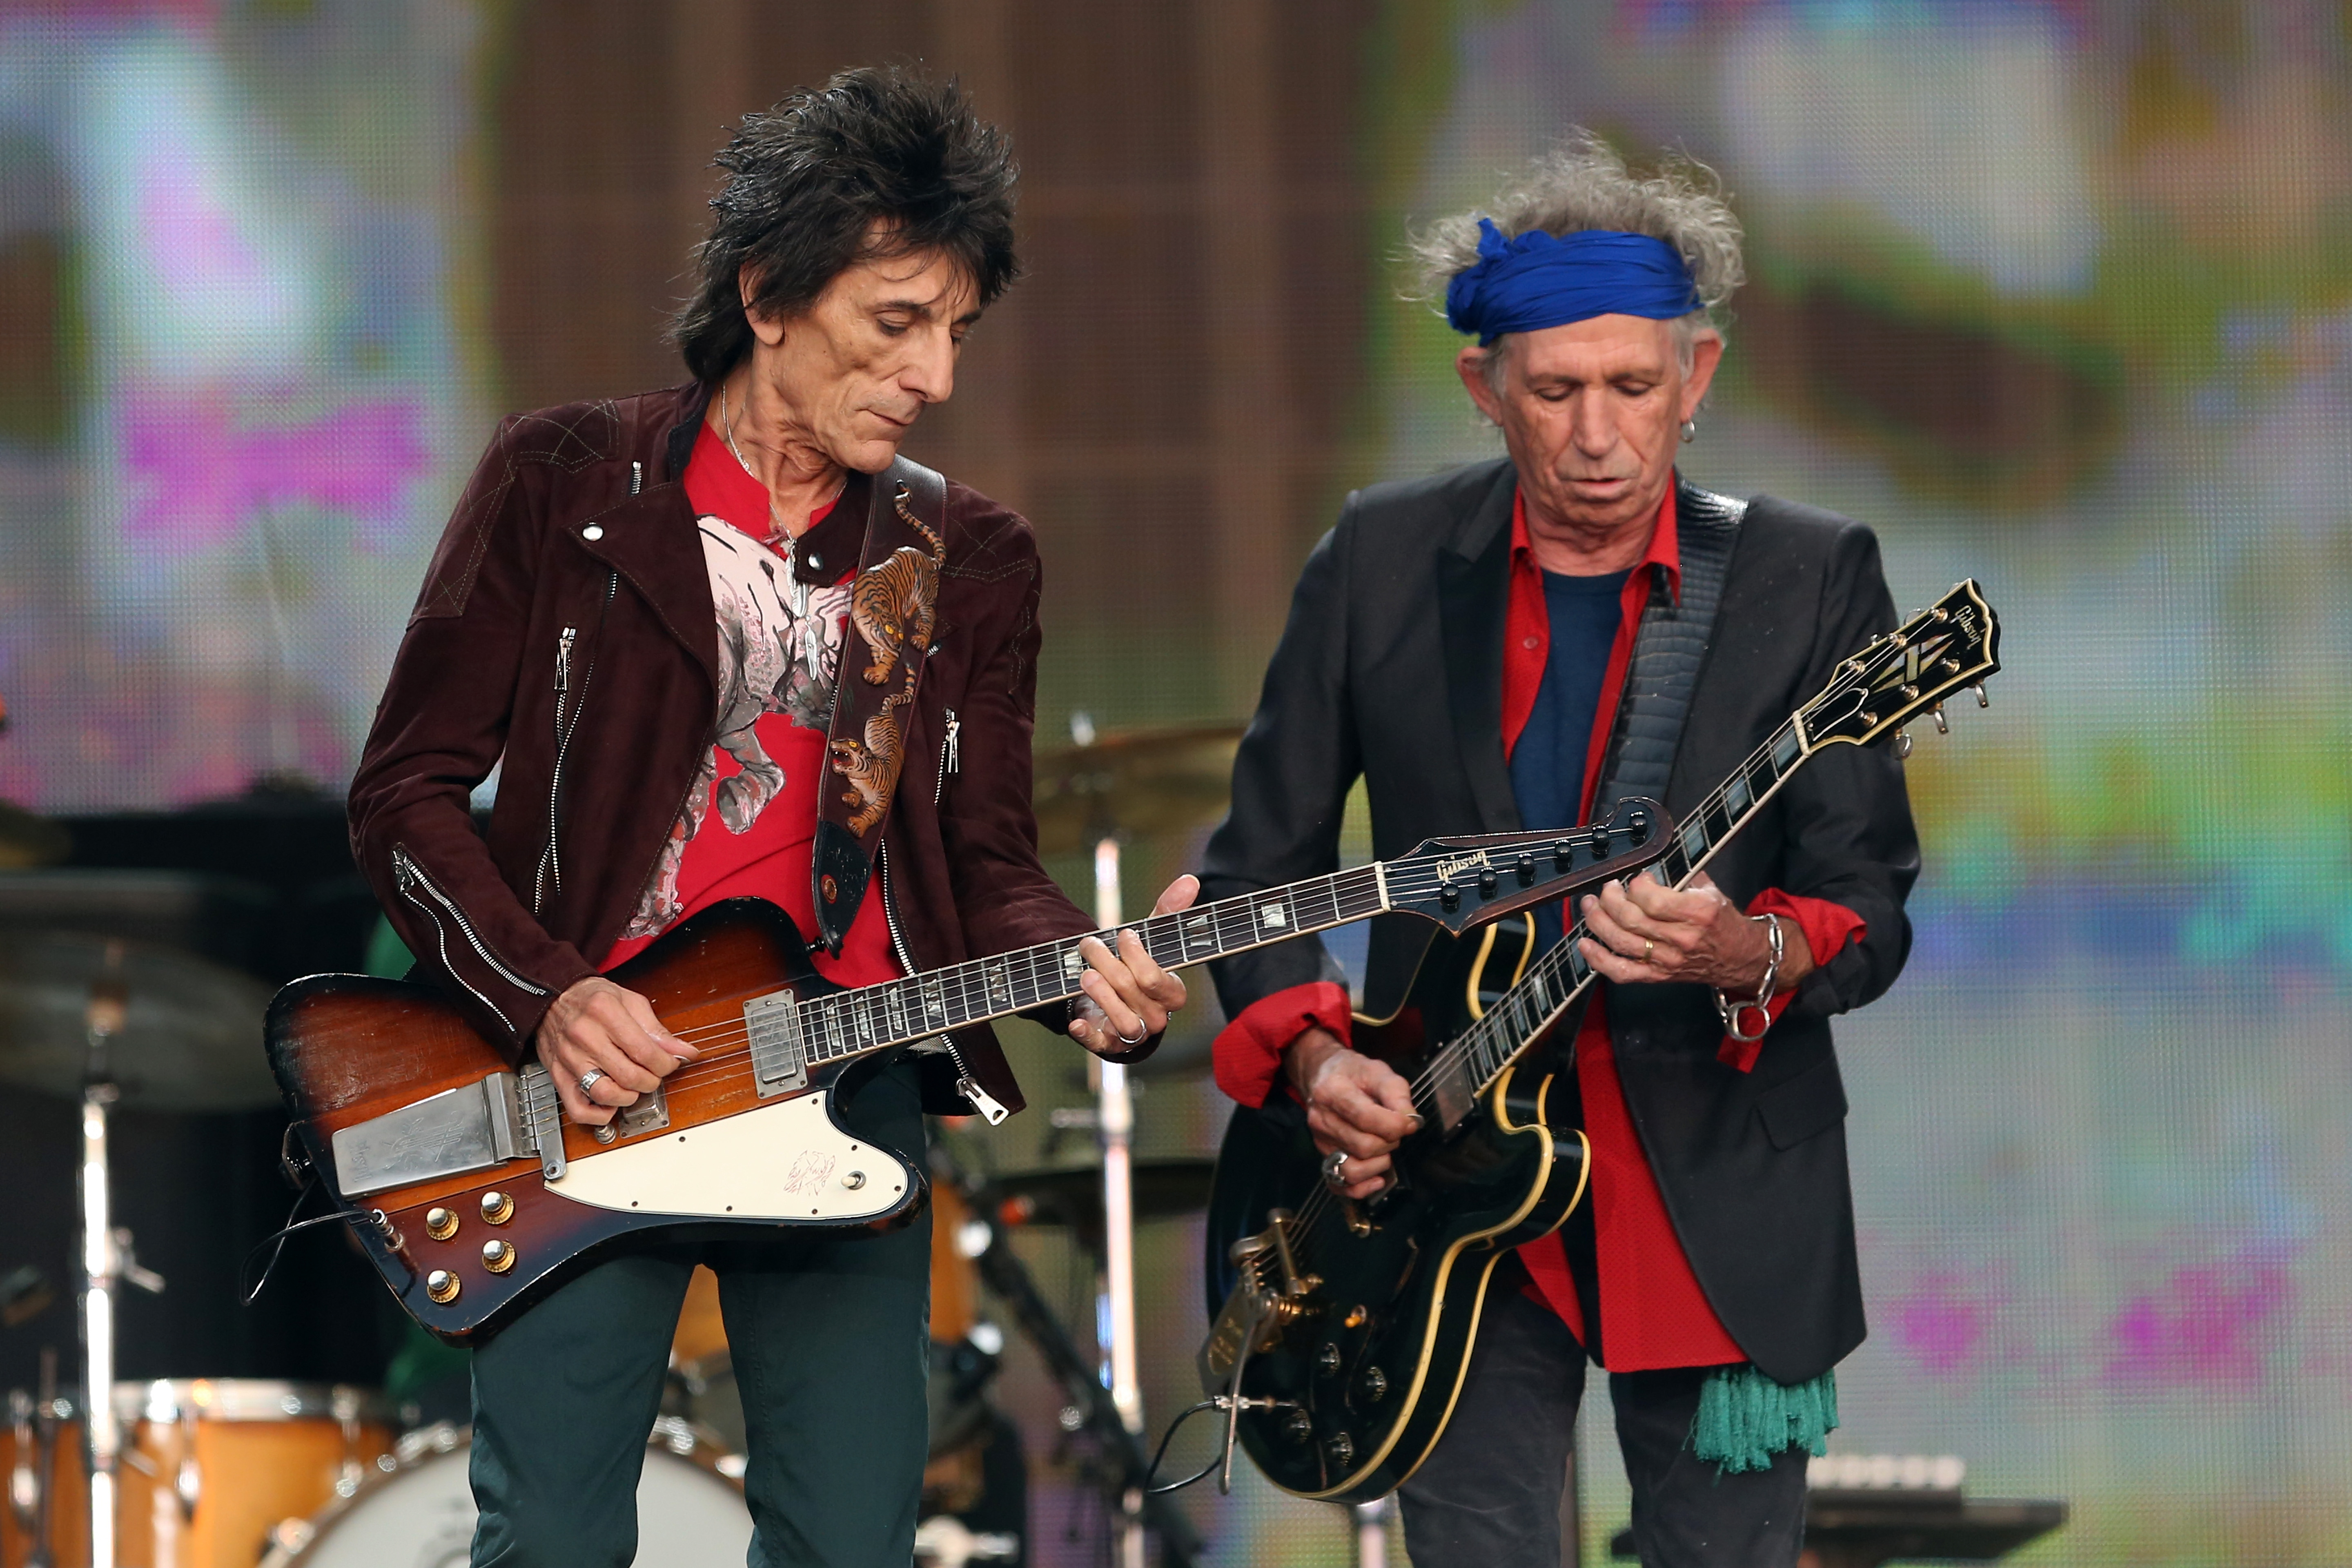 LONDON, ENGLAND - JULY 06:  Ronnie Wood and Keith Richards of The Rolling Stones perform live on stage during day two of British Summer Time Hyde Park presented by Barclaycard at Hyde Park on July 6, 2013 in London, England.  (Photo by Simone Joyner/Getty Images)